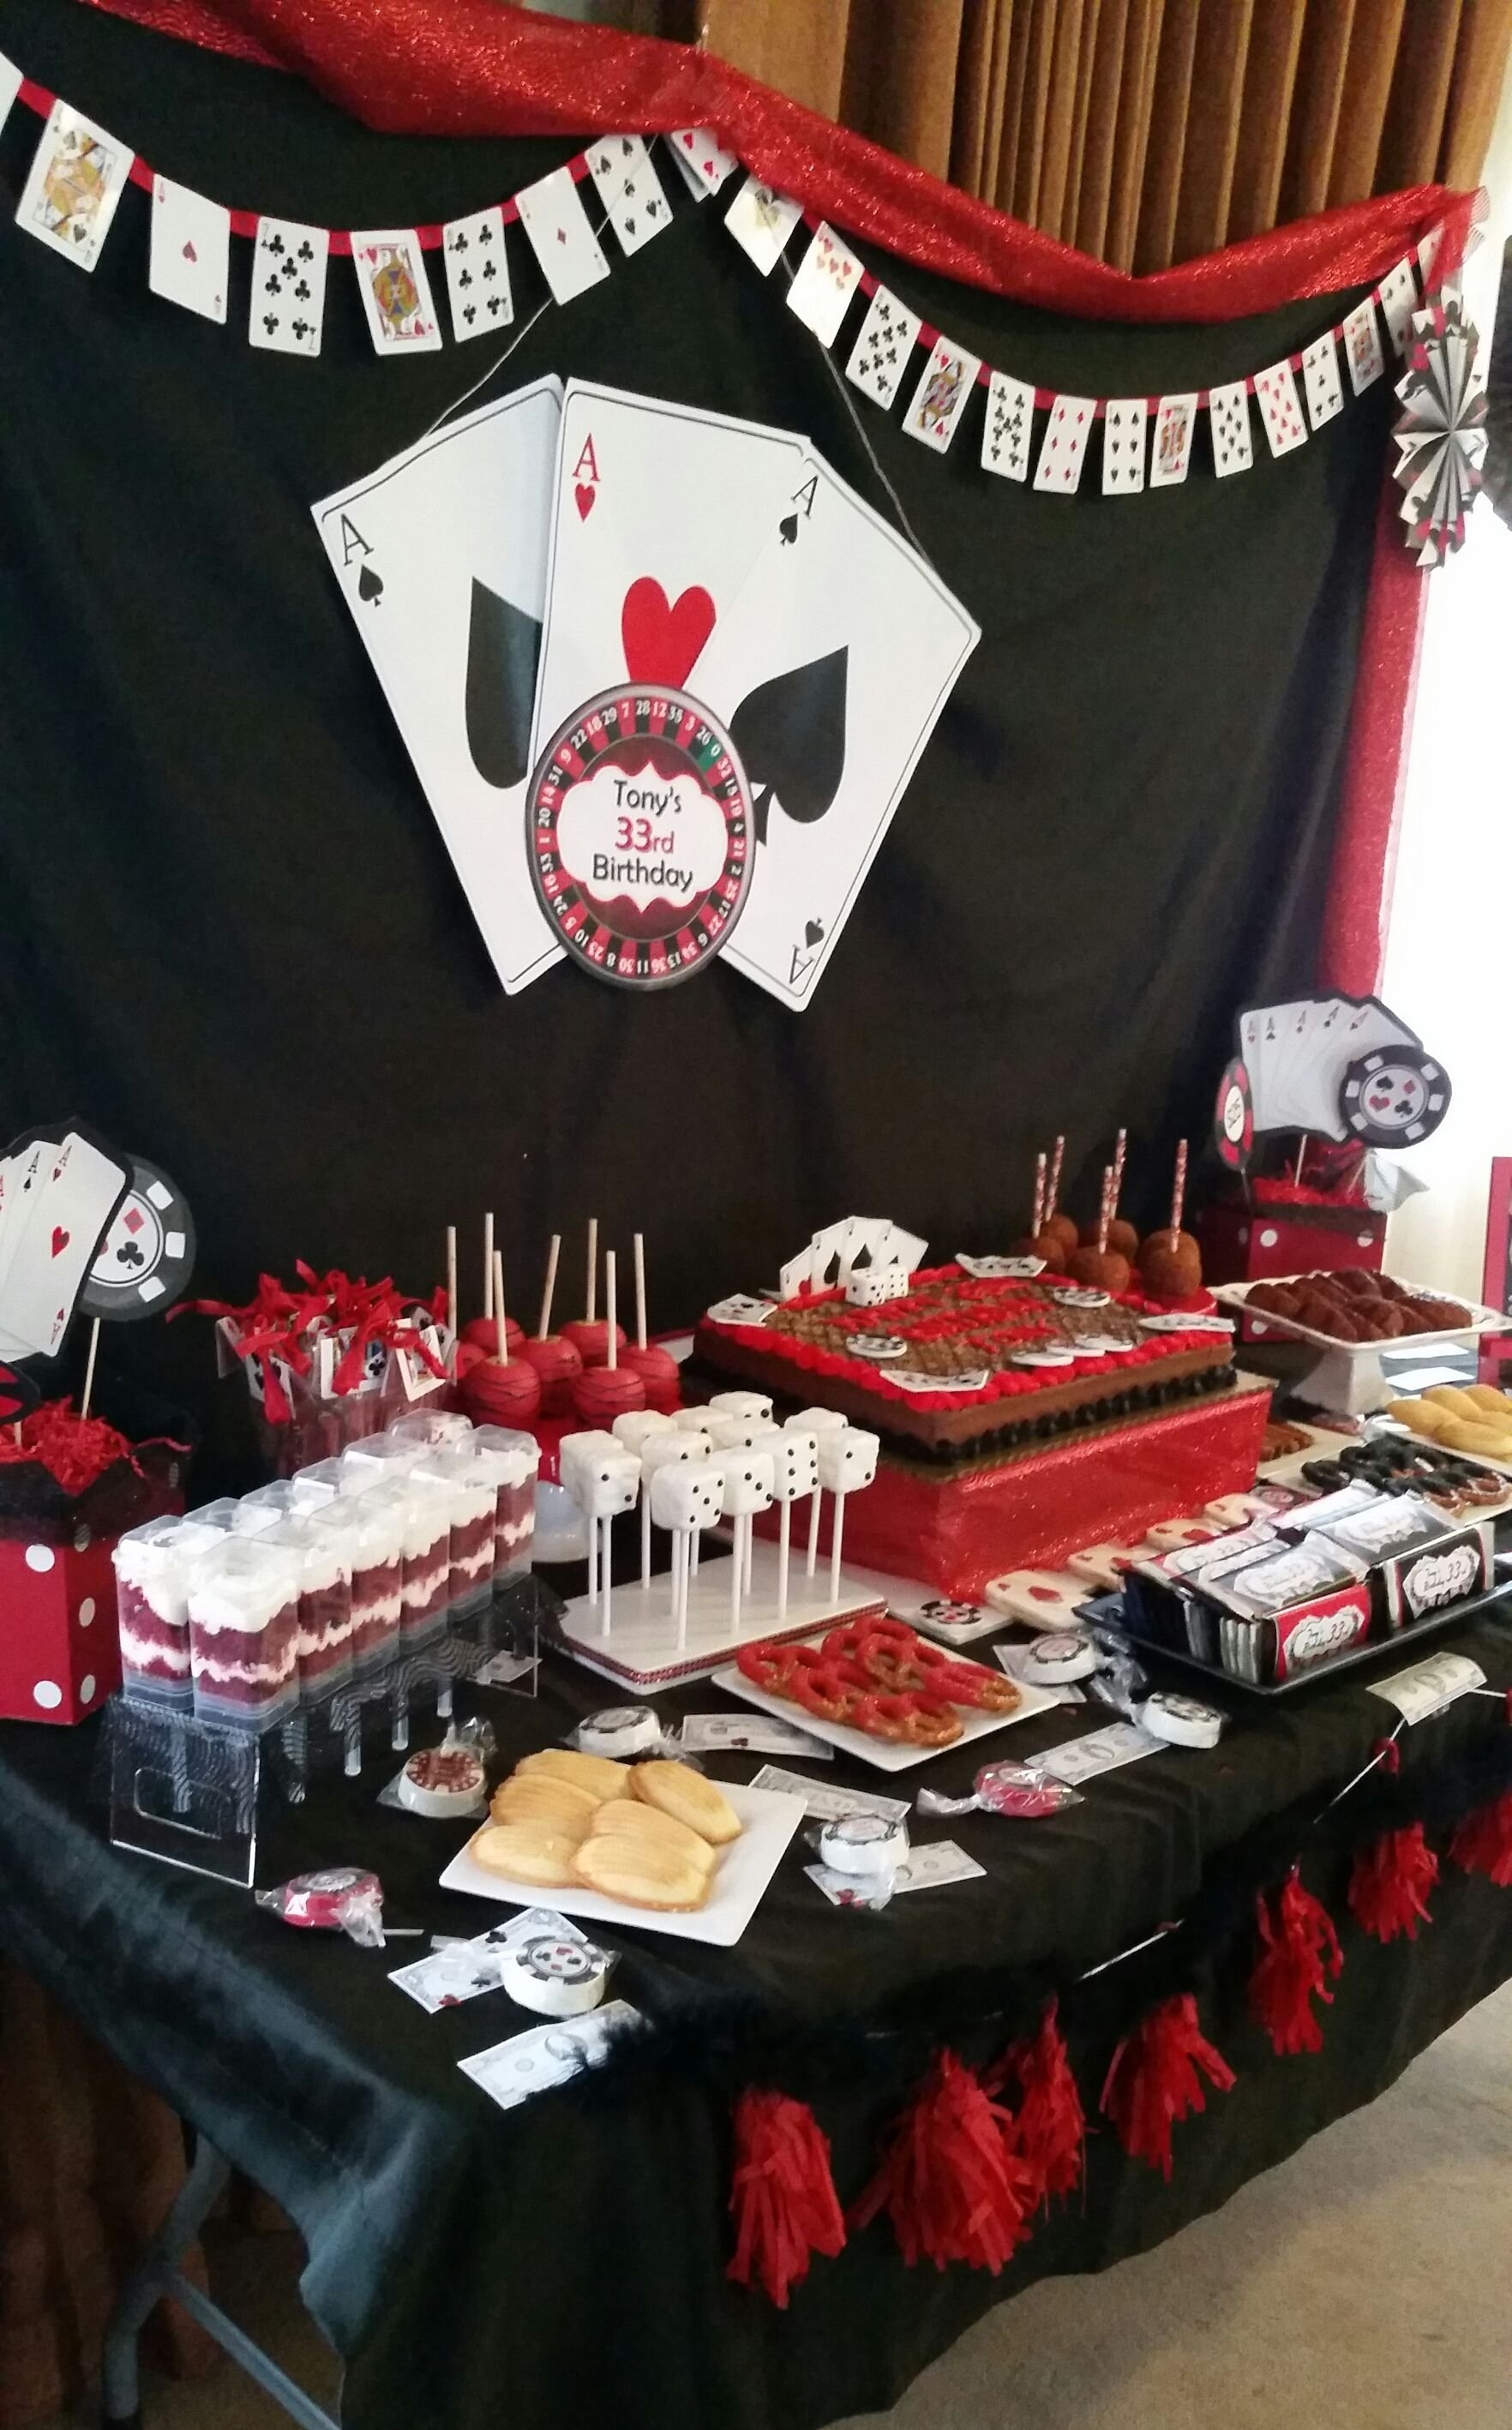 10 Stunning Las Vegas Birthday Party Ideas pinso sweet candy buffets aka chiloso gummy bear on so sweet